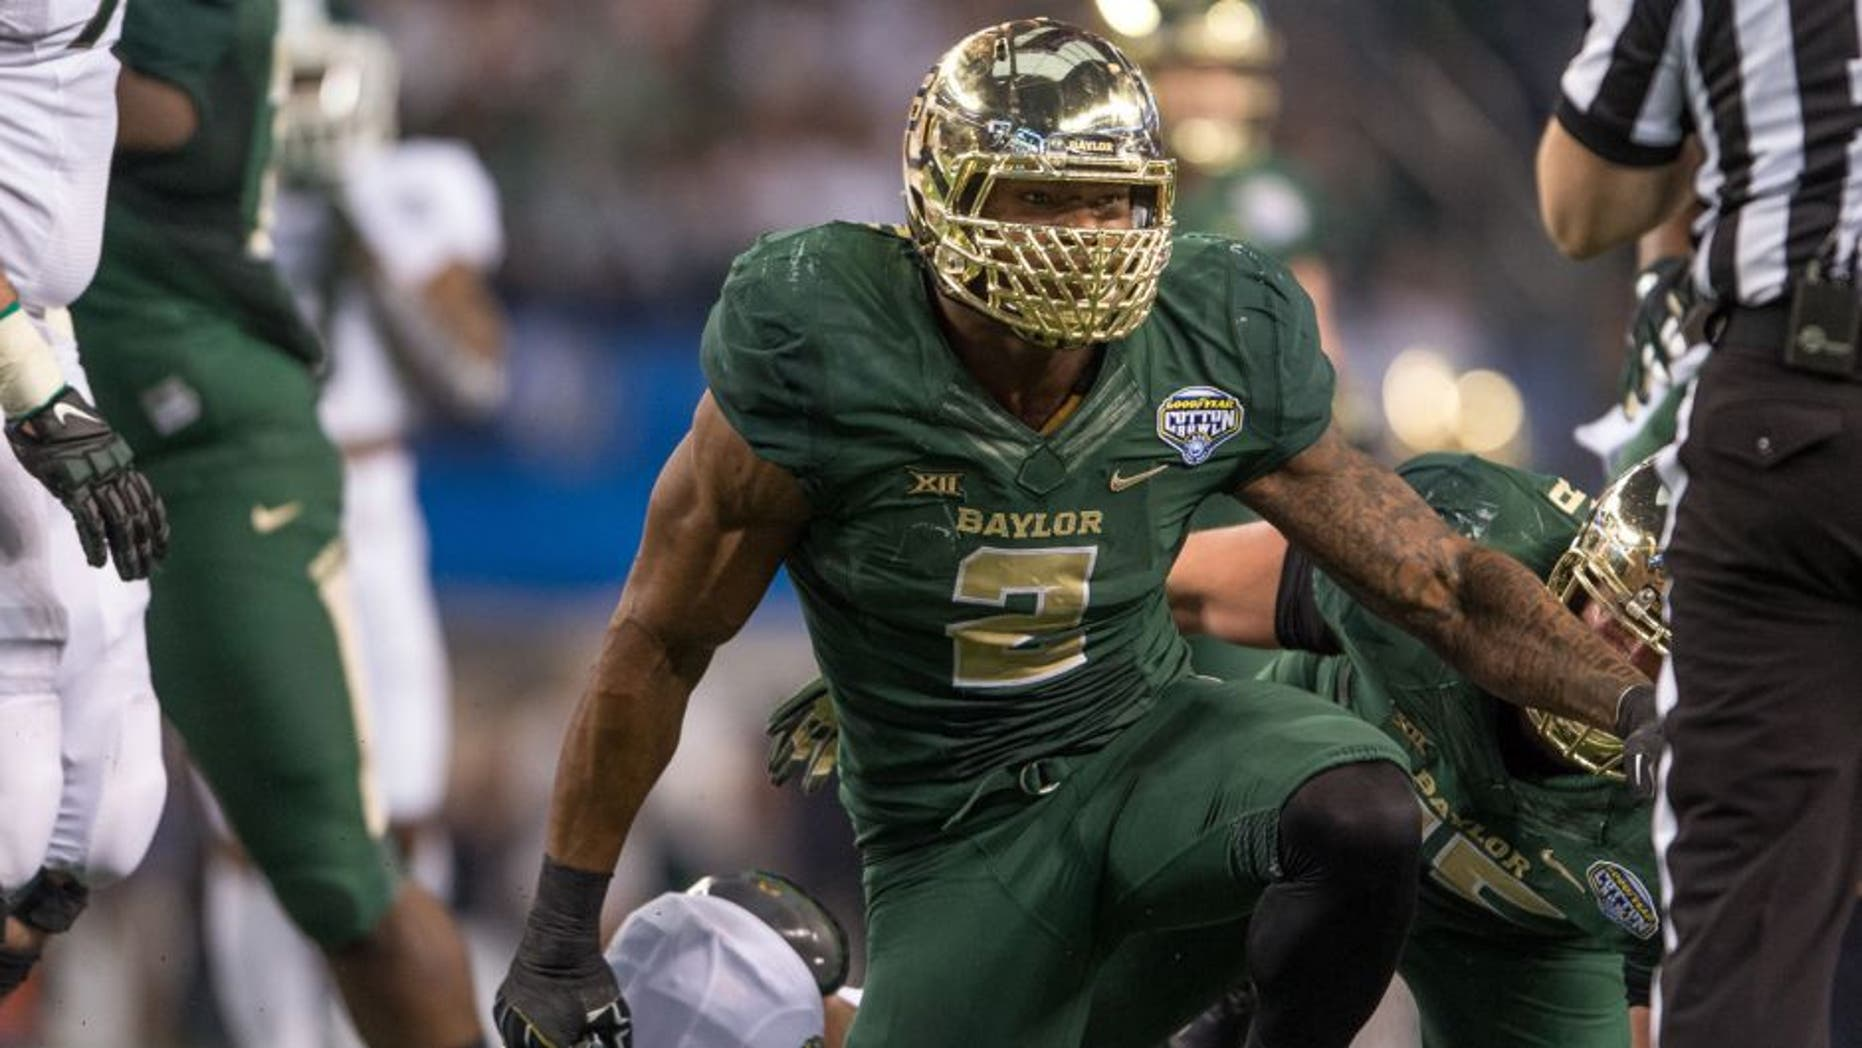 Jan 1, 2015; Arlington, TX, USA; Baylor Bears defensive end Shawn Oakman (2) celebrates his sack of Michigan State Spartans quarterback Connor Cook (18) during the first half in the 2015 Cotton Bowl Classic at AT&T Stadium. Mandatory Credit: Jerome Miron-USA TODAY Sports